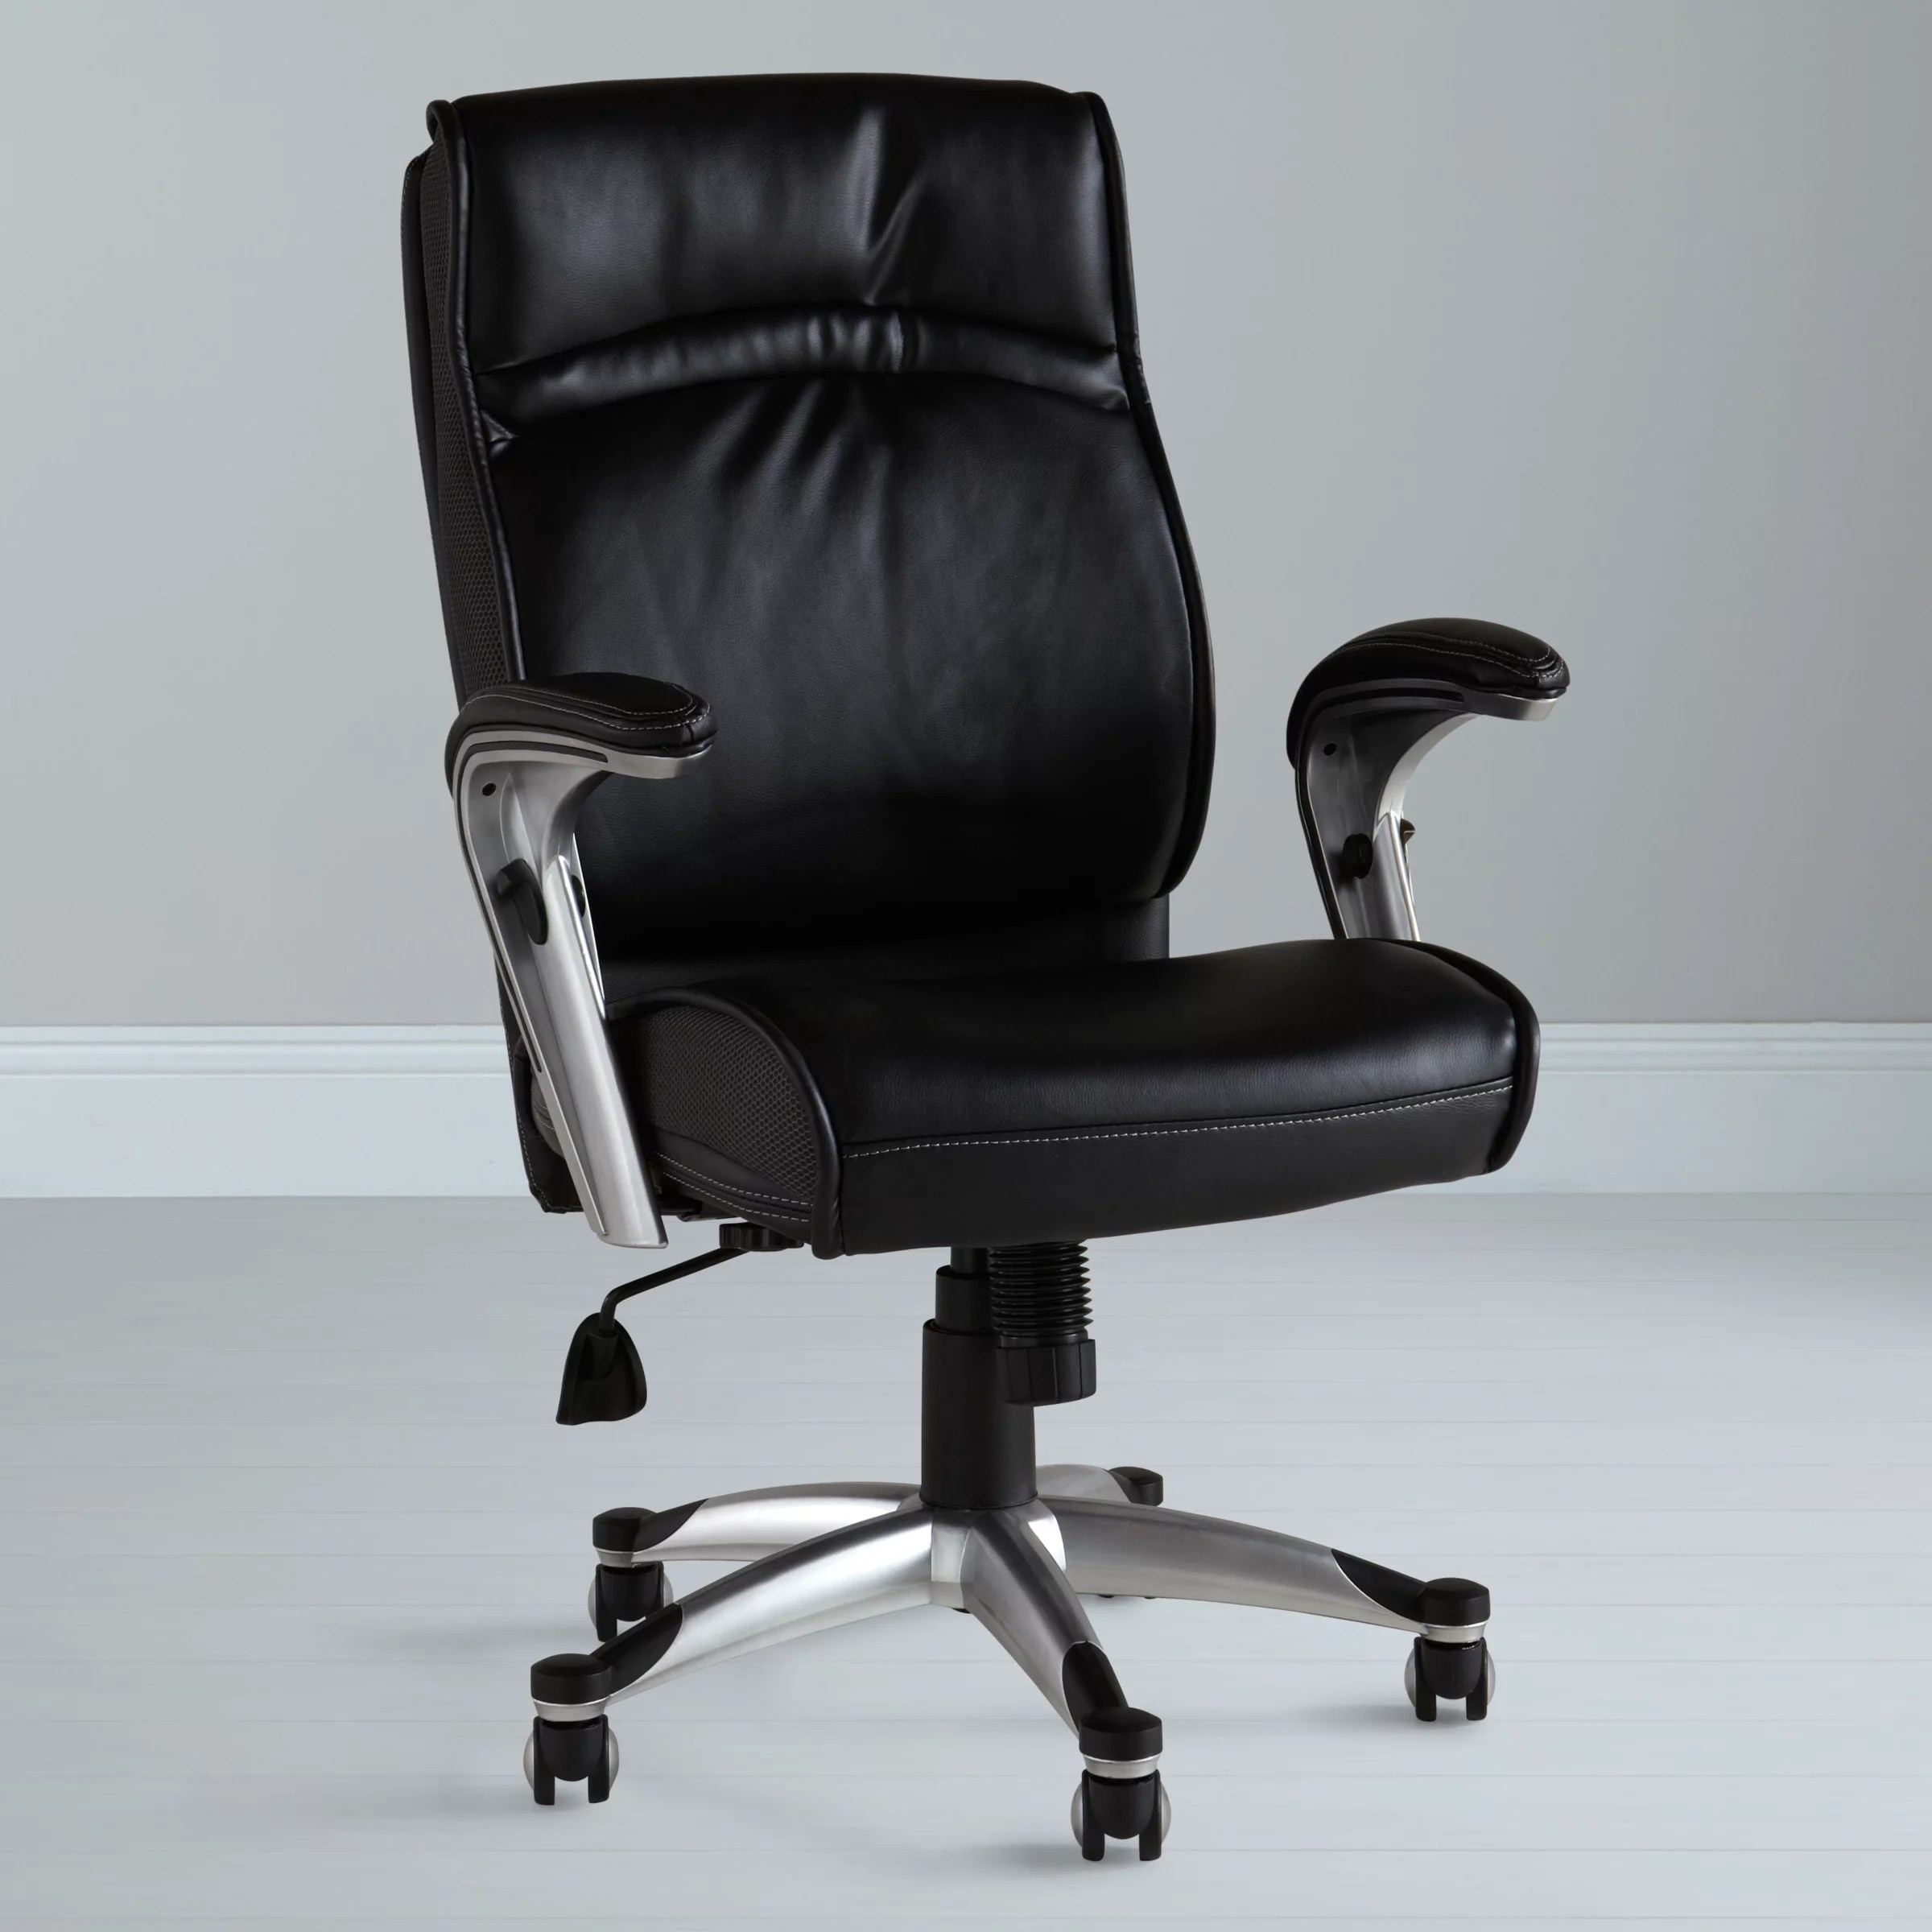 back support office chairs uk genuine leather dining buy cheap lumbar for chair compare